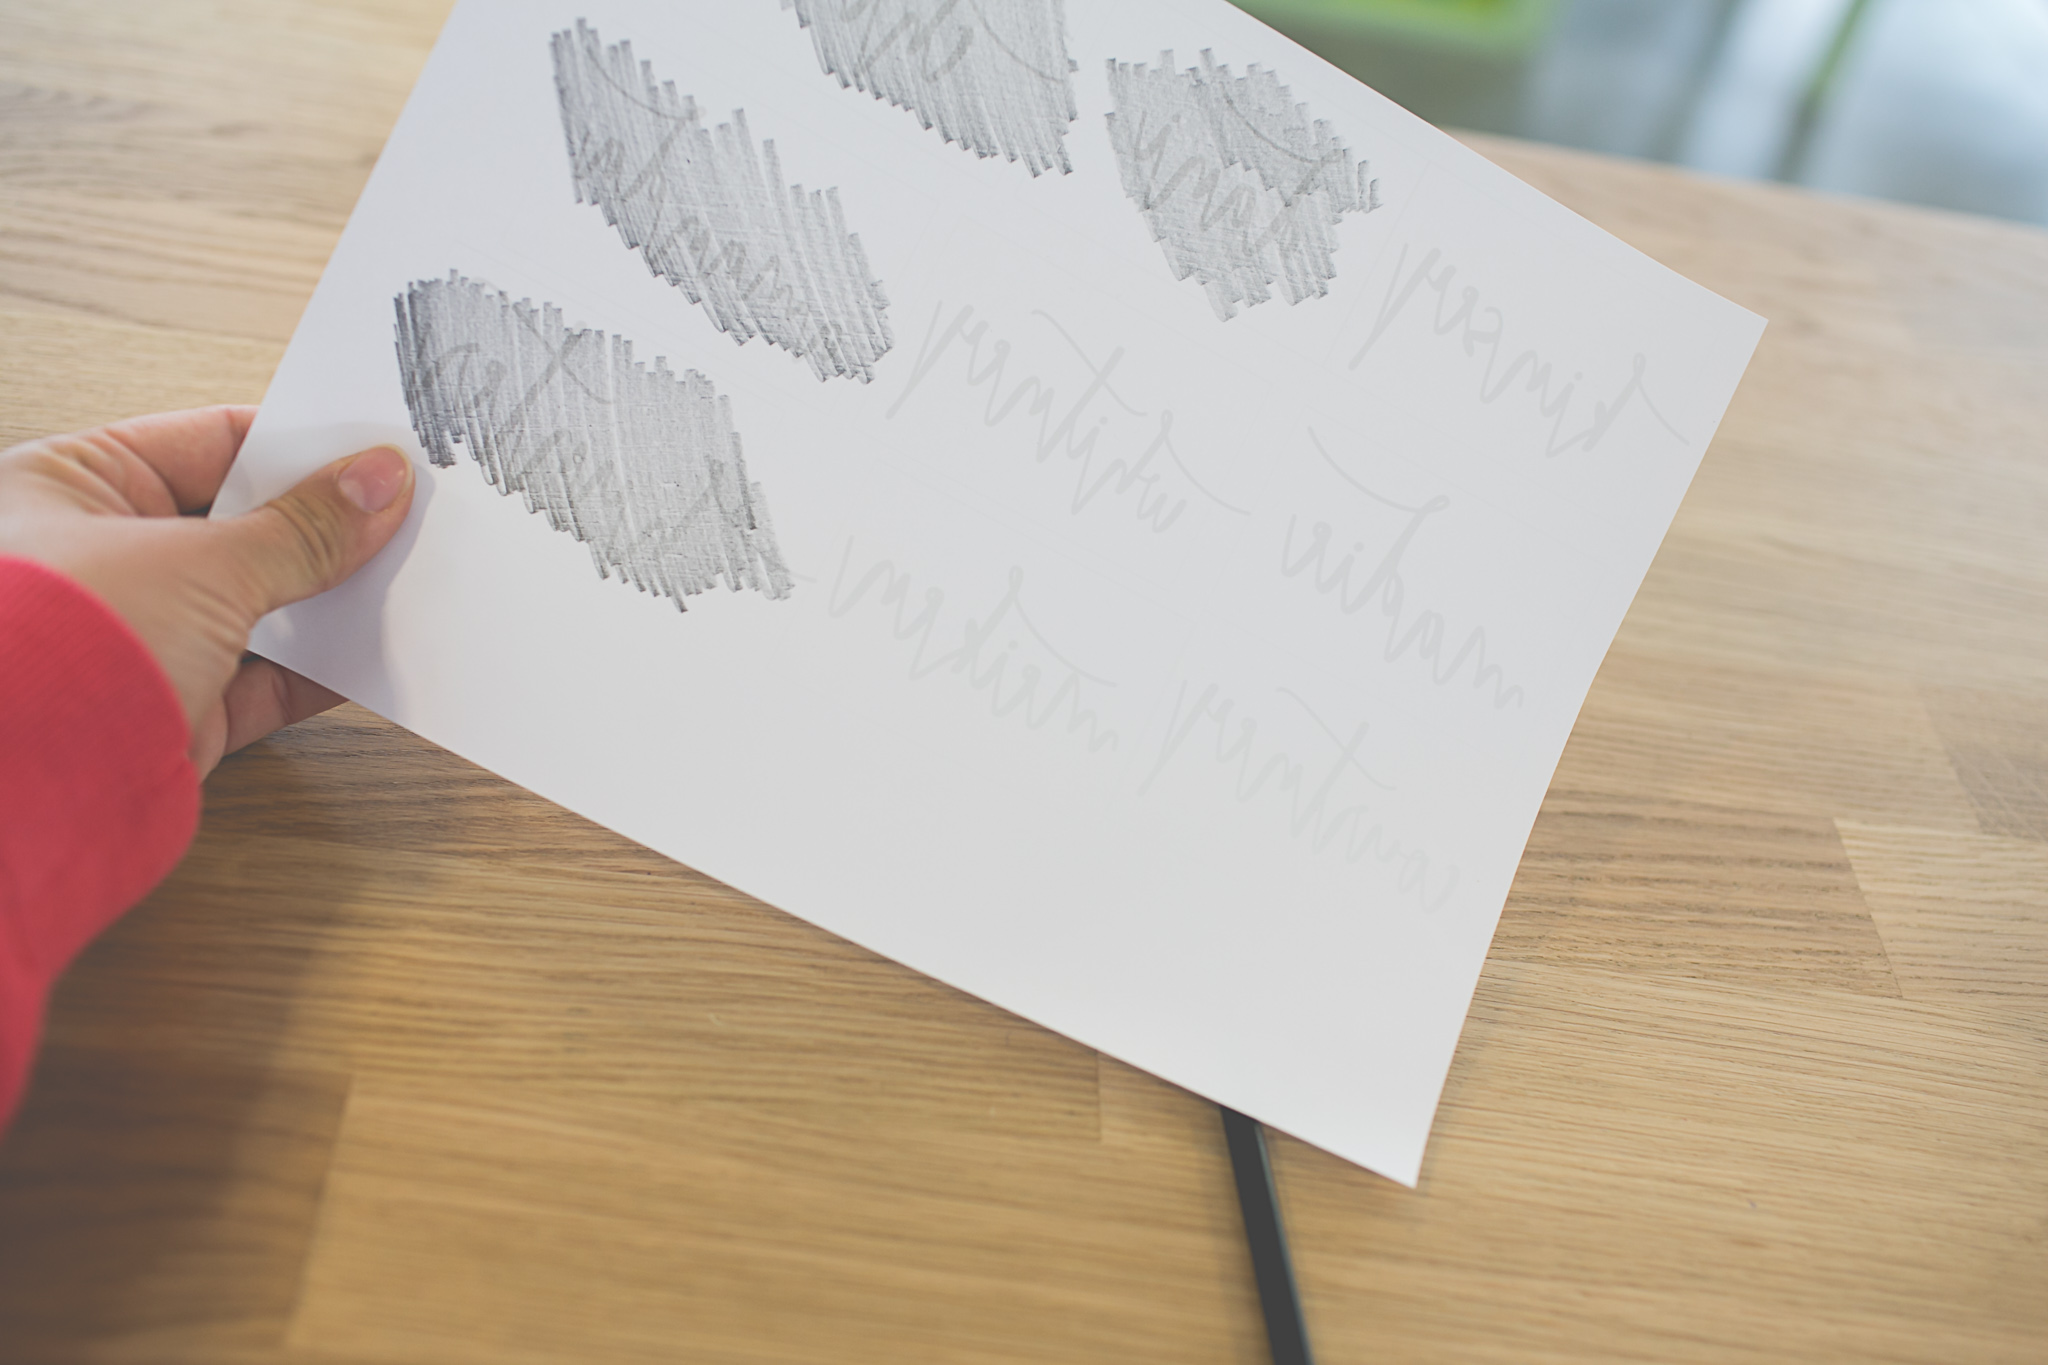 use the side of your pencil to create a 'carbon paper' (if you would rather use actual carbon paper- that works great too) only worry about laying the pencil on the areas with printing.